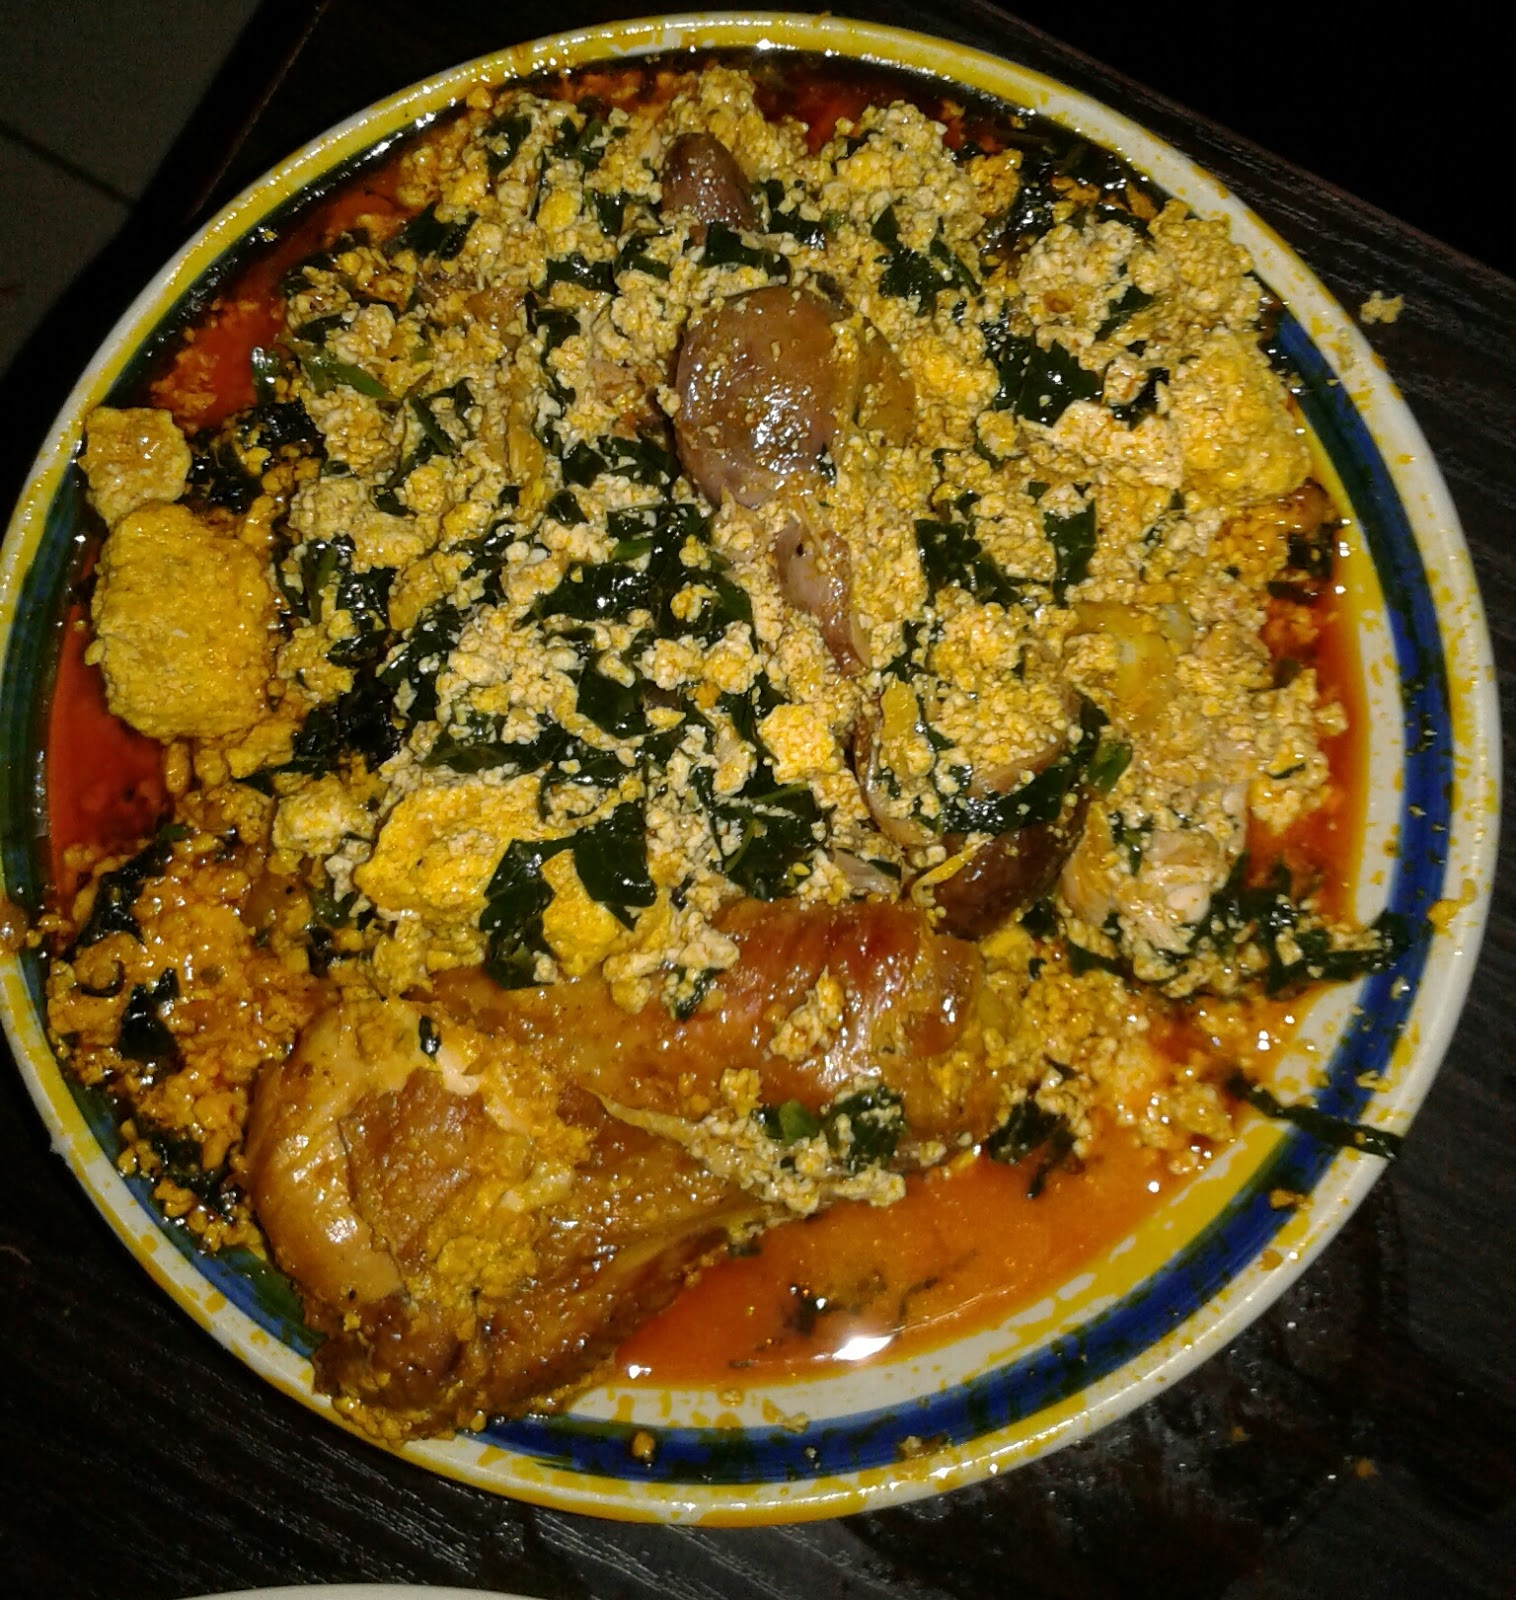 Egusi Soup Is One Of The Most Common Soups We Make Here In Nigeria And One Of The Best Soups For Many Hardly Would You Hear Anyone Mentioning Their